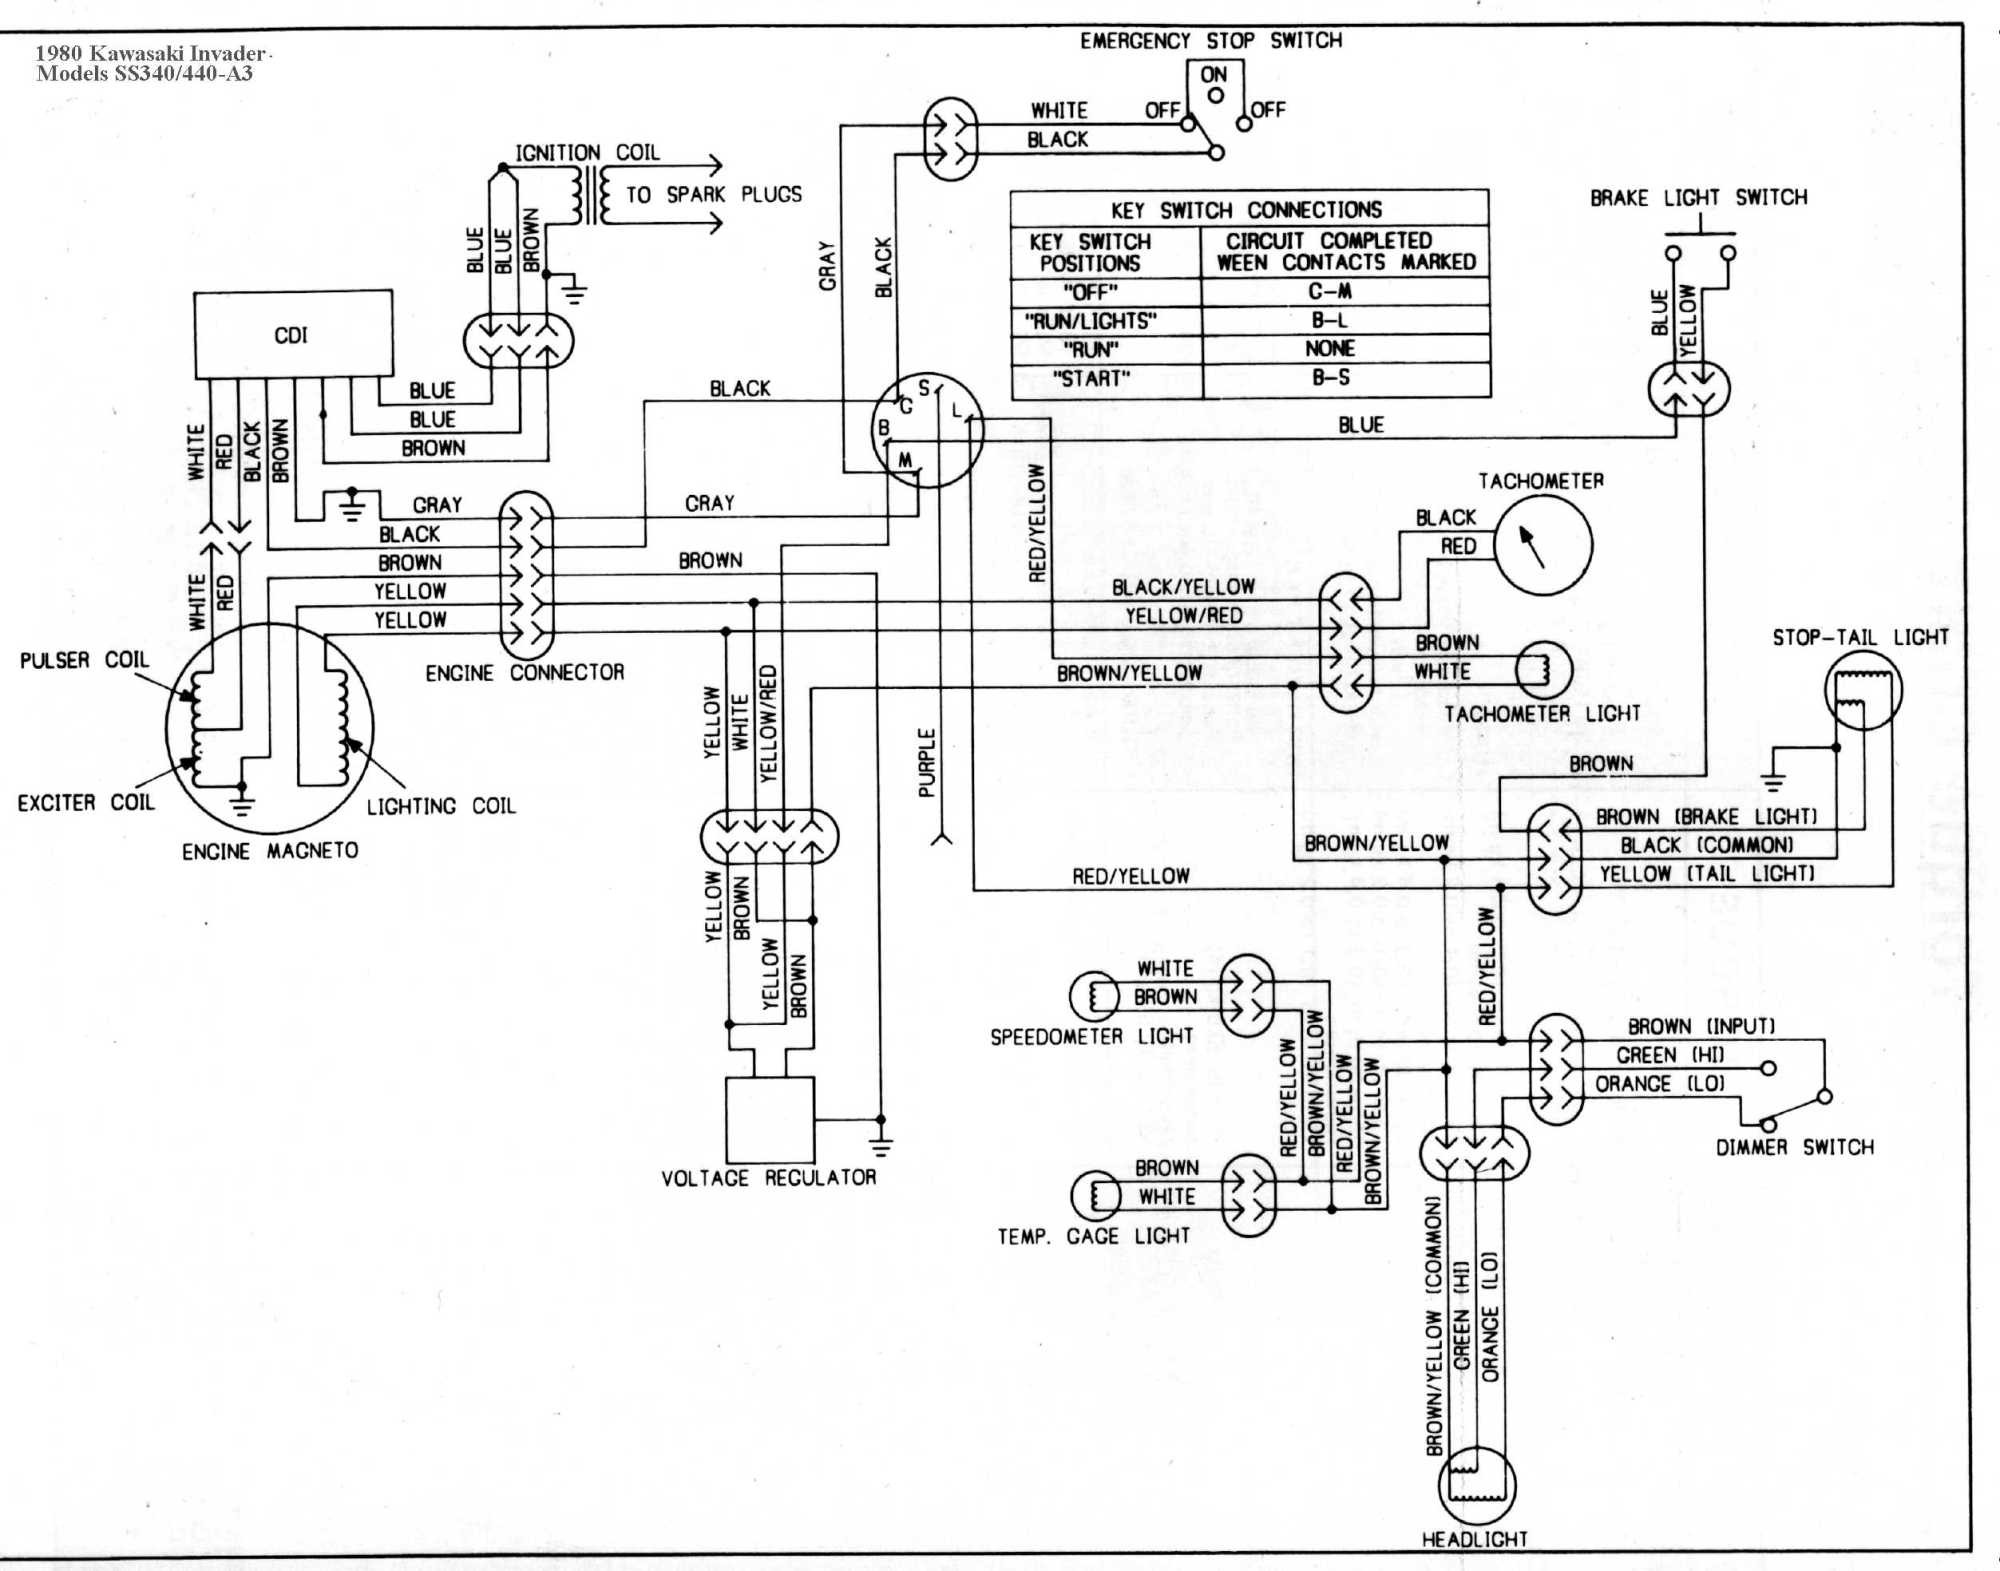 hight resolution of yamaha srx wiring diagram wiring diagrams rh 73 treatchildtrauma de yamaha srx 700 triple 2001 yamaha srx 700 snowmobile